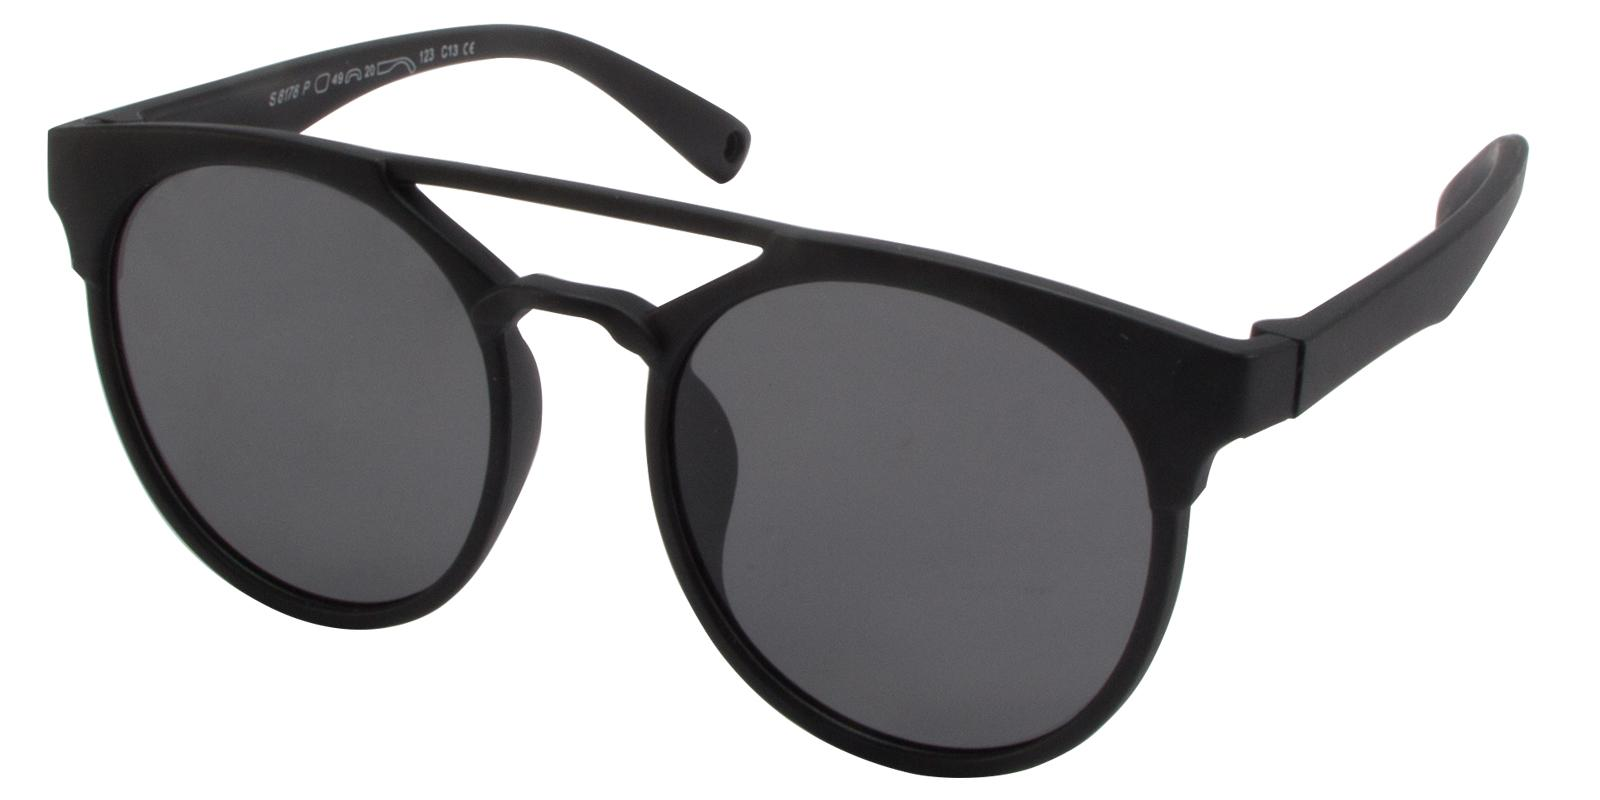 Nix Gray TR Sunglasses Frames from ABBE Glasses